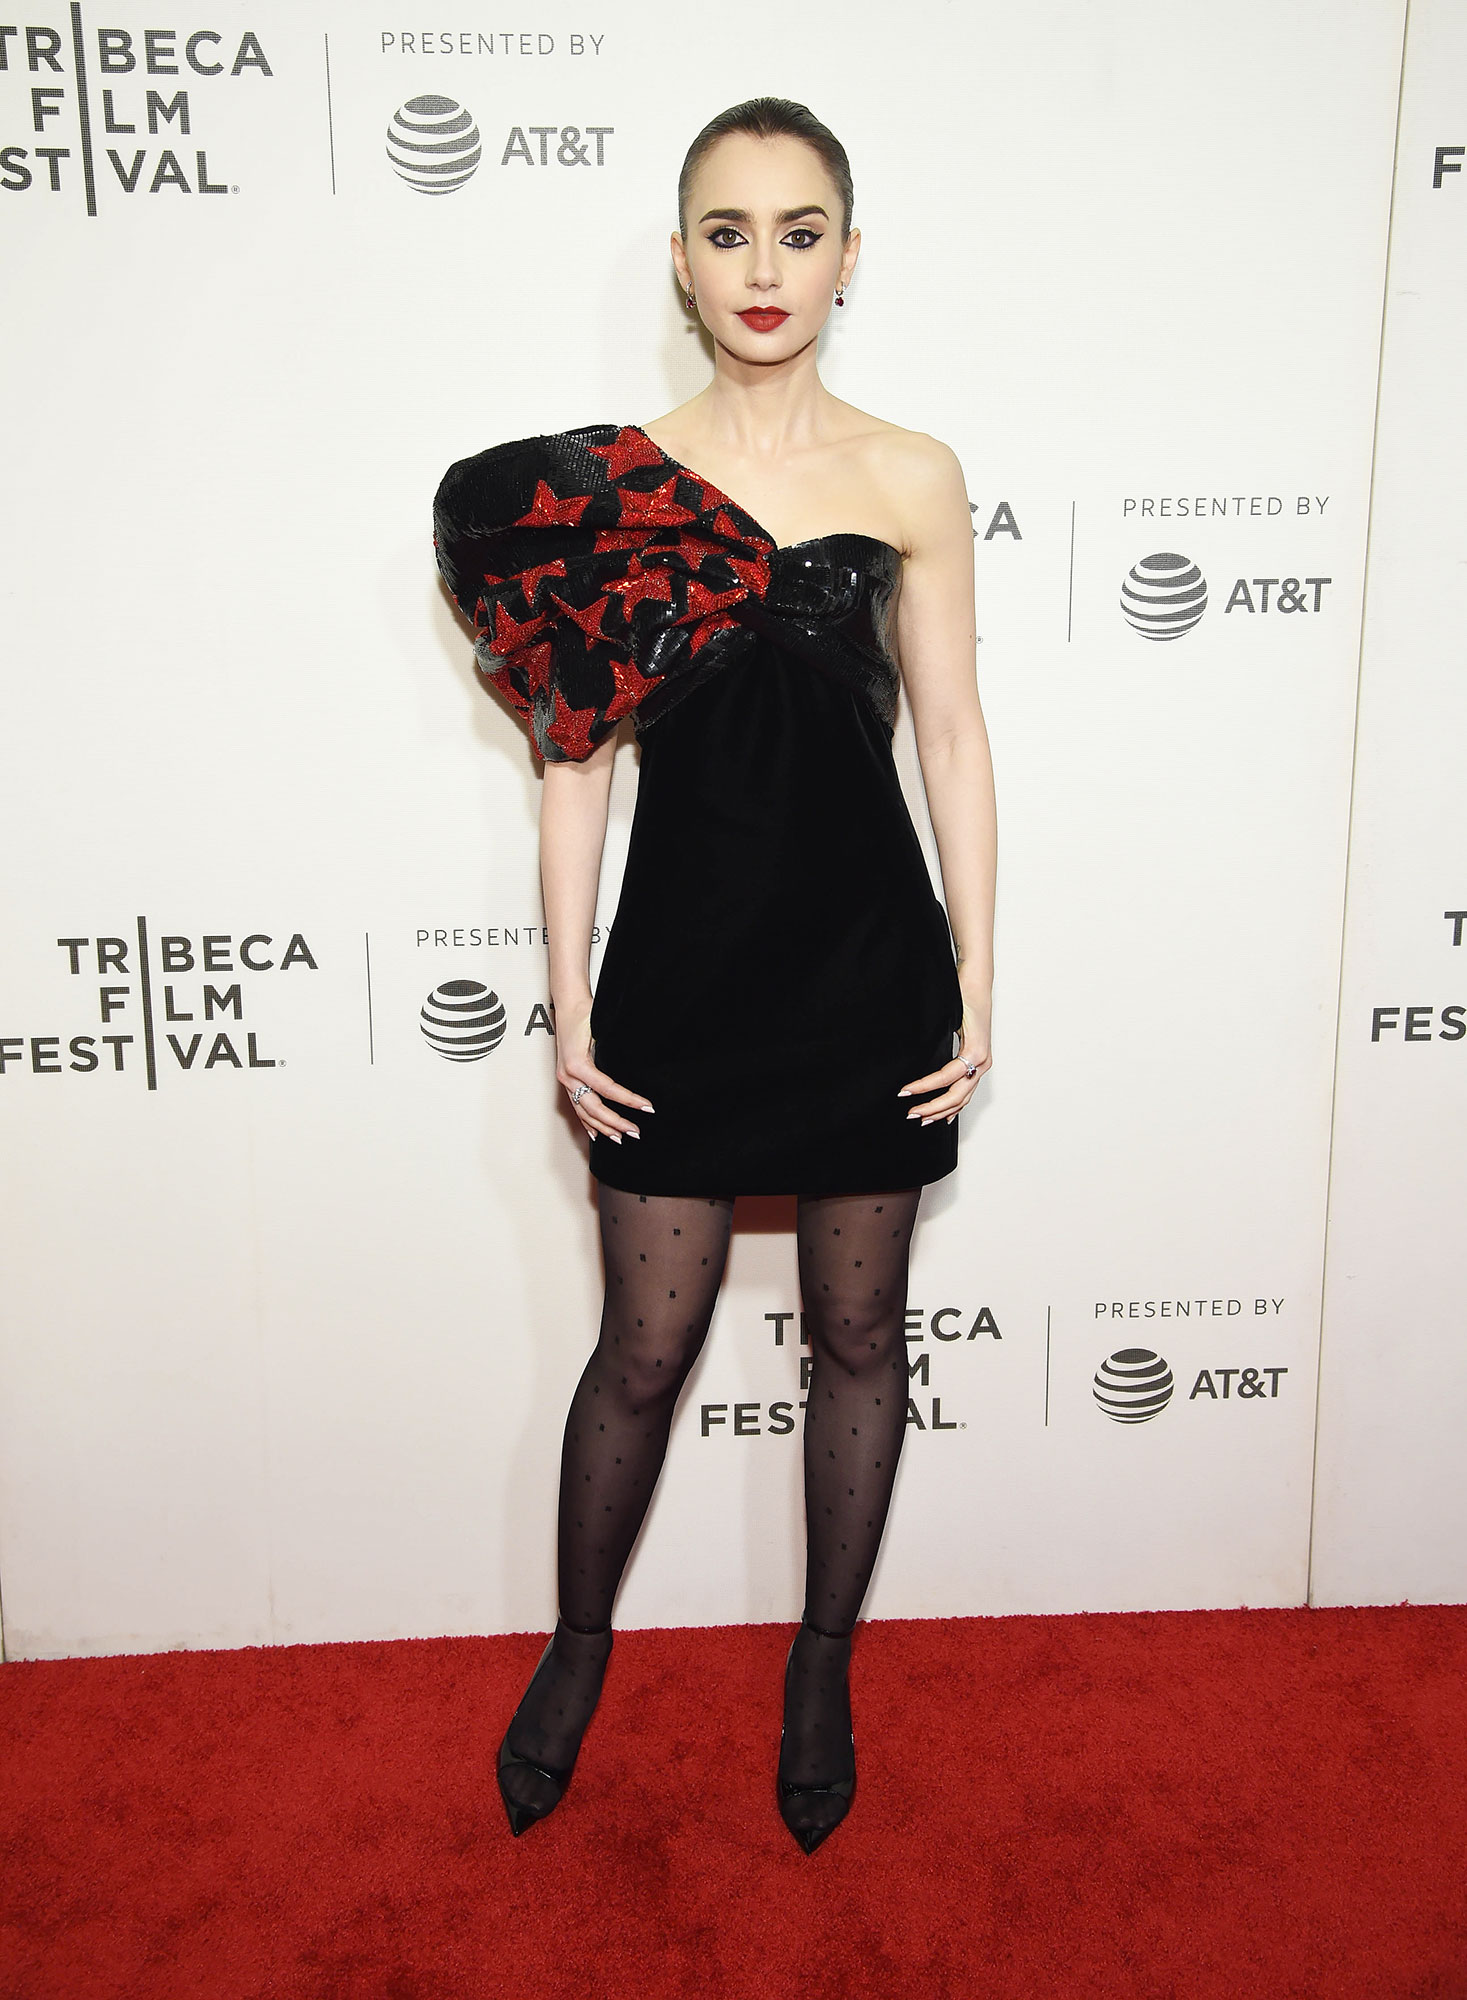 """Lily Collins and More Stars up Their Style Game at Tribeca Film Festival - Lilly Collins attends """"Extremely Wicked, Shockingly Evil And Vile"""" – 2019 Tribeca Film Festival at BMCC Tribeca PAC on May 02, 2019 in New York City."""